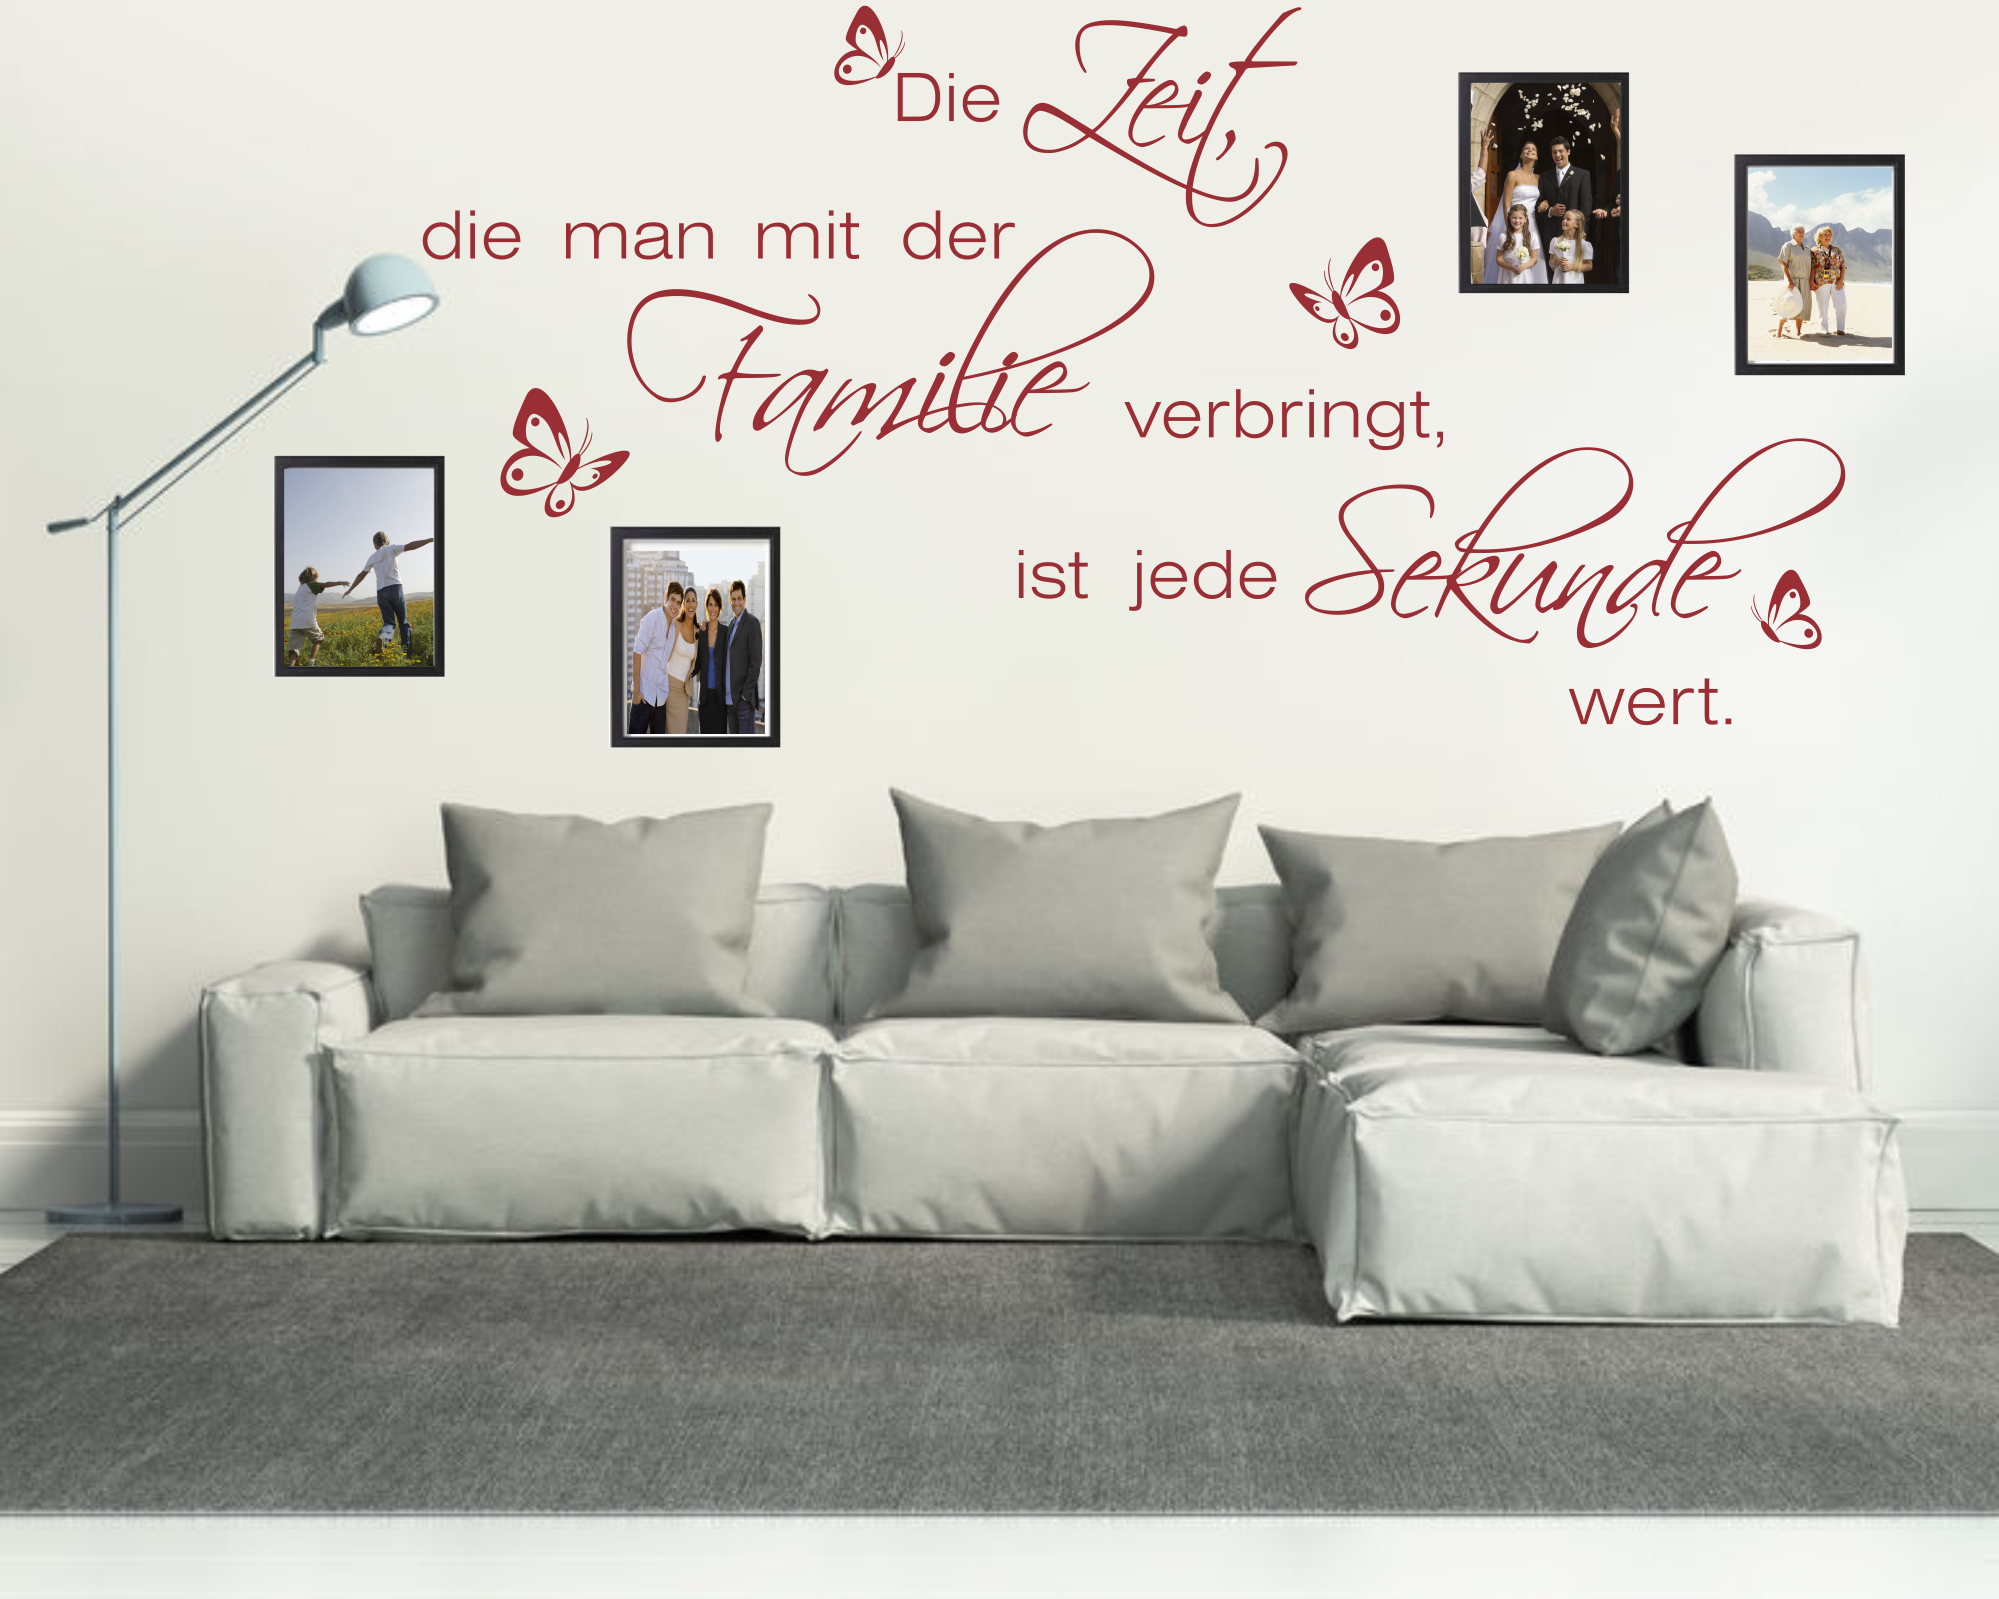 wandtattoos wandspr che wanddeko wandtattoo die zeit die man mit der. Black Bedroom Furniture Sets. Home Design Ideas